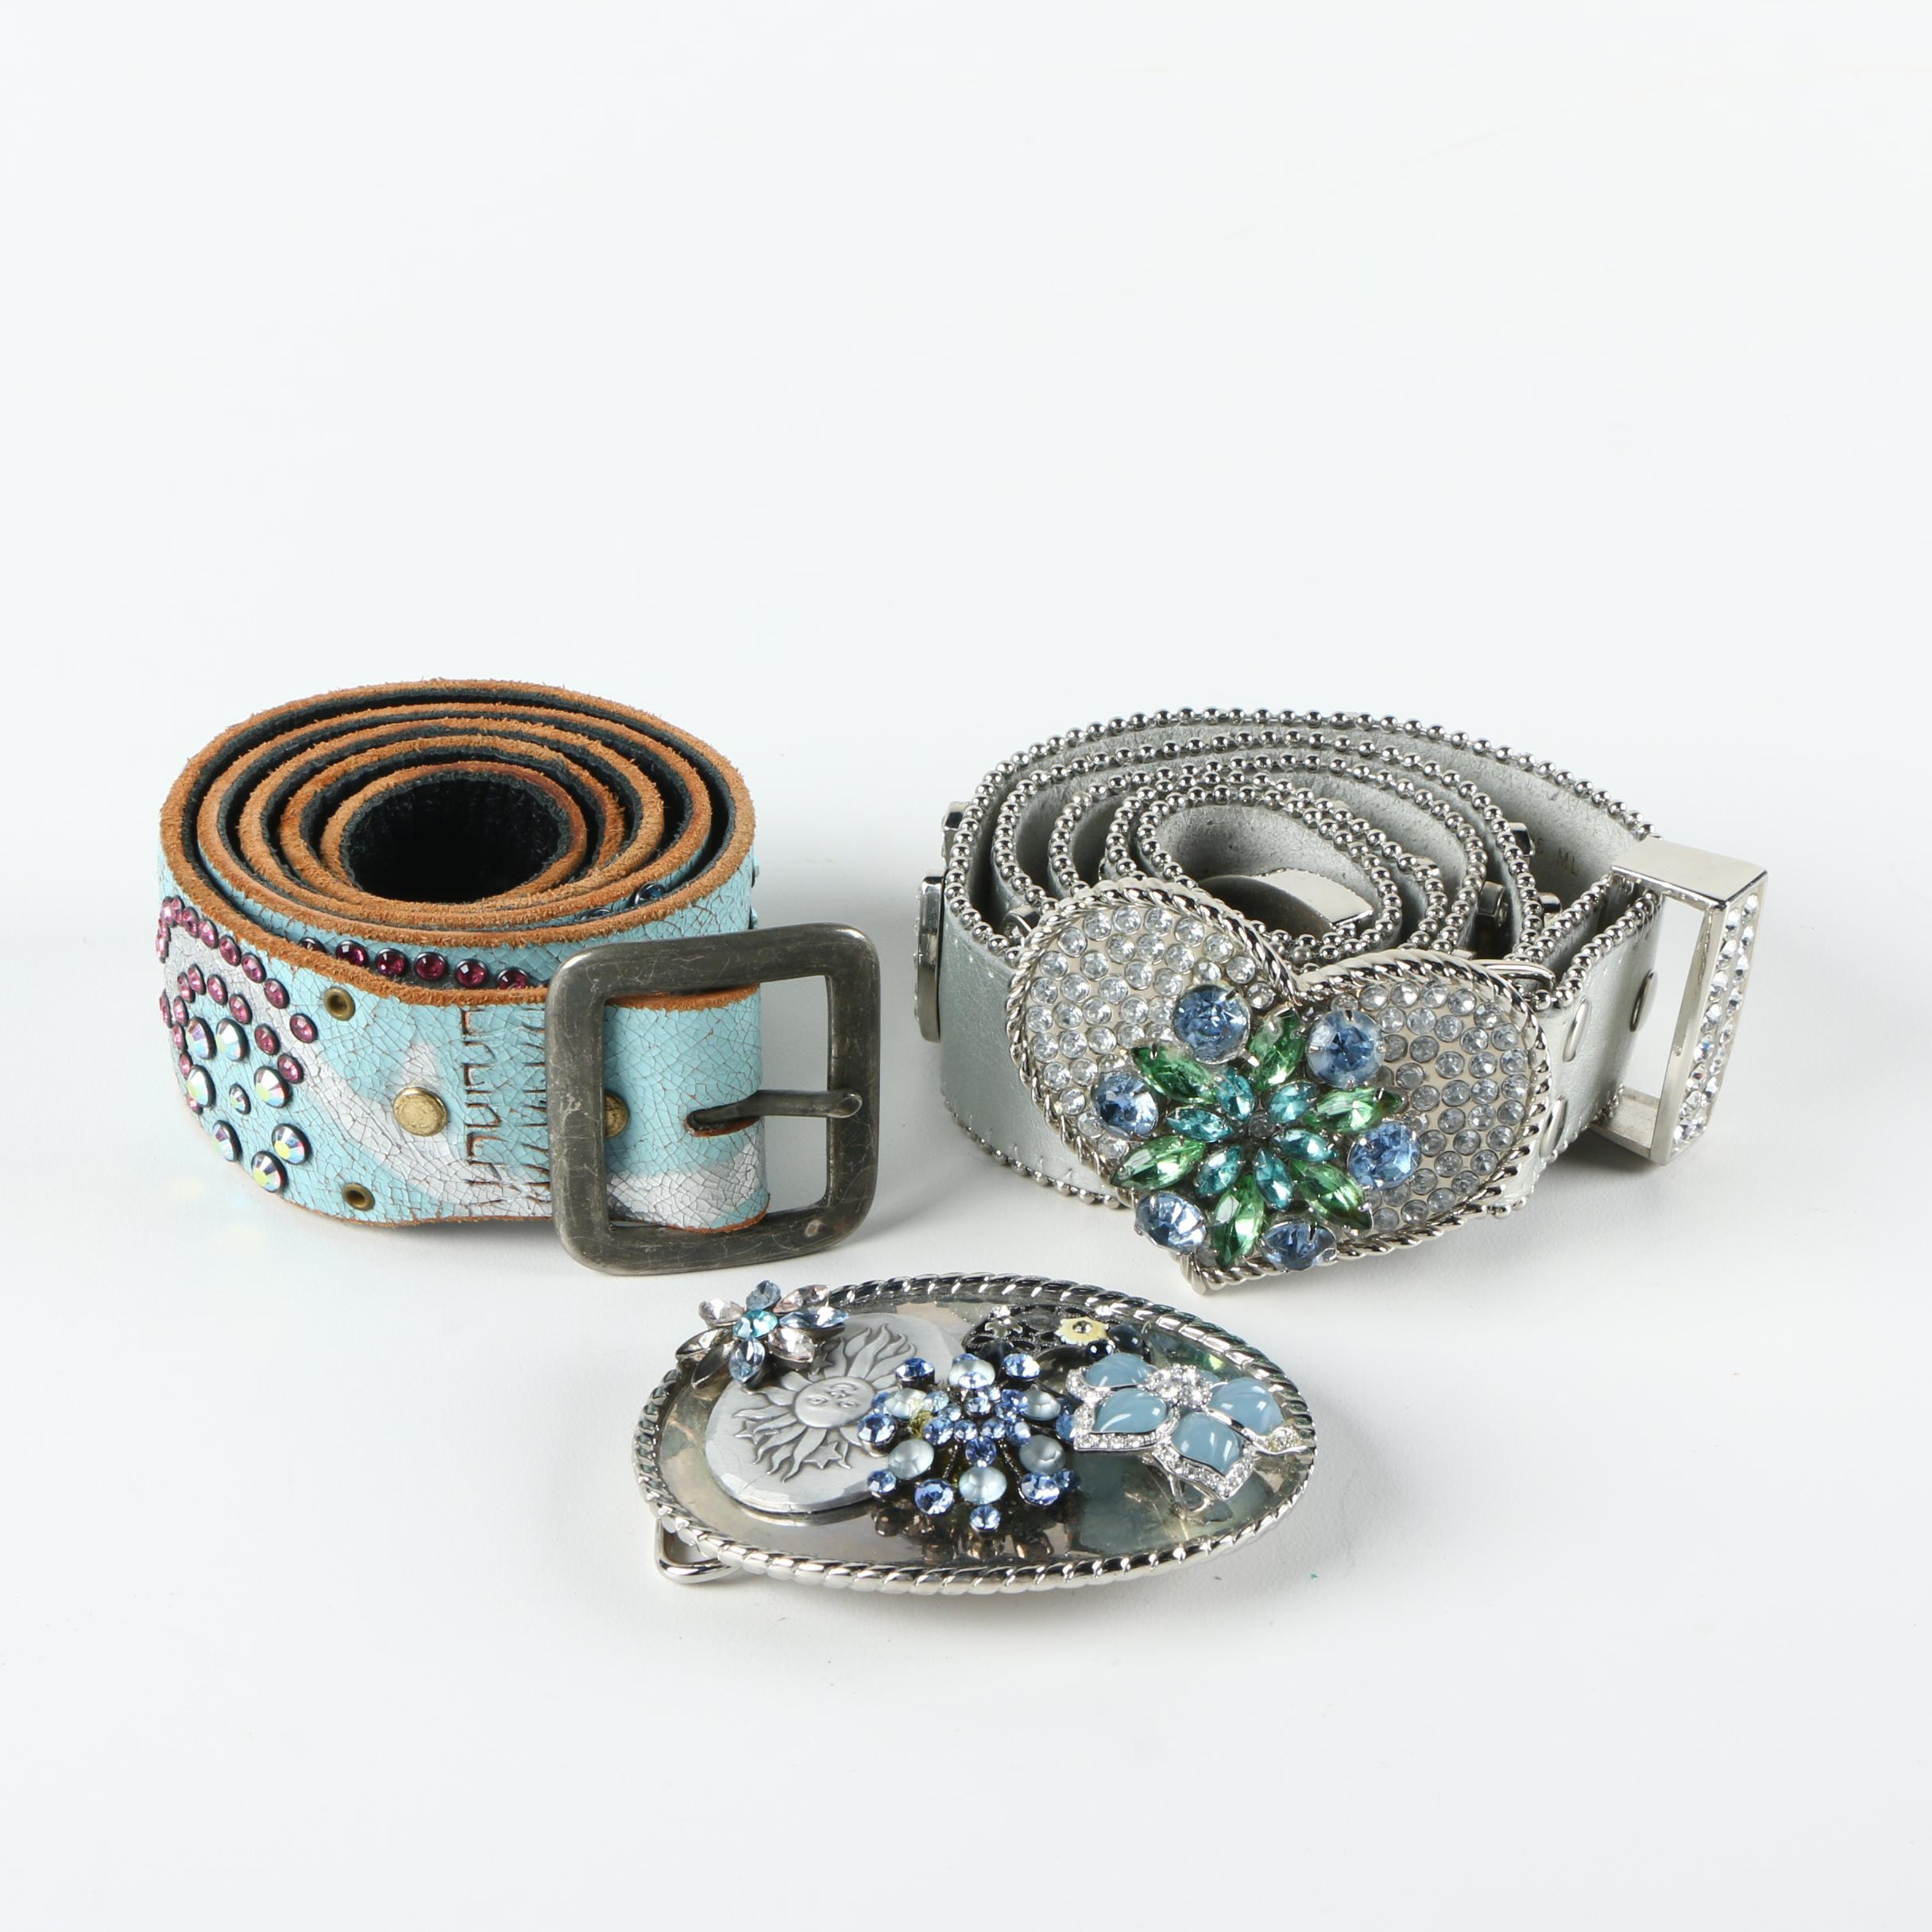 Bejeweled Leather Belts and Buckles